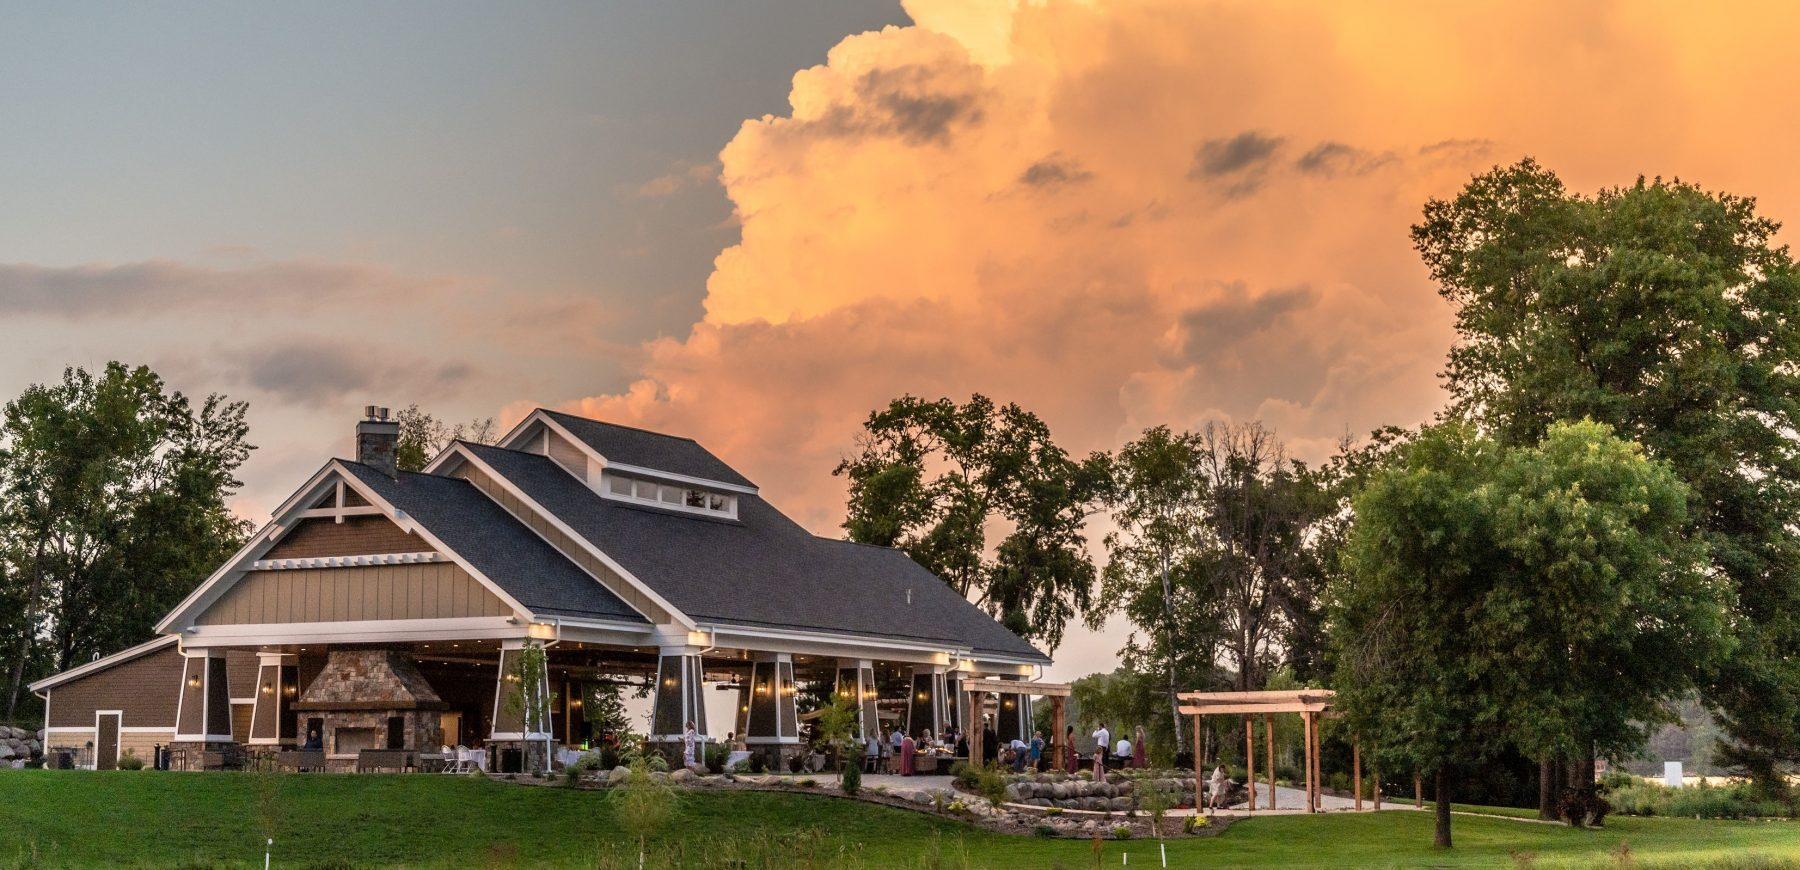 The Pavilion at Madden's during sunset